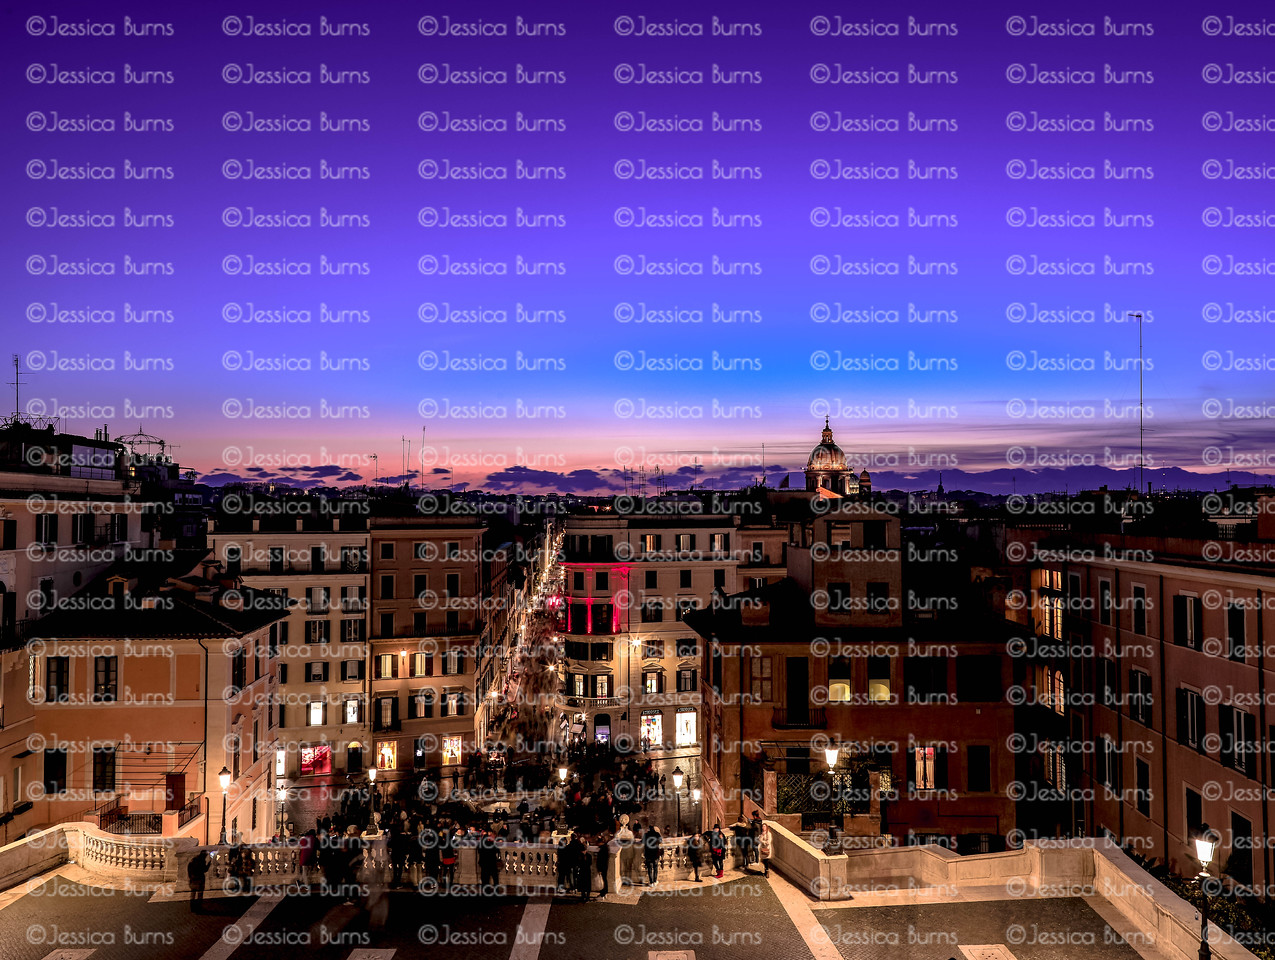 View from the Spanish Steps